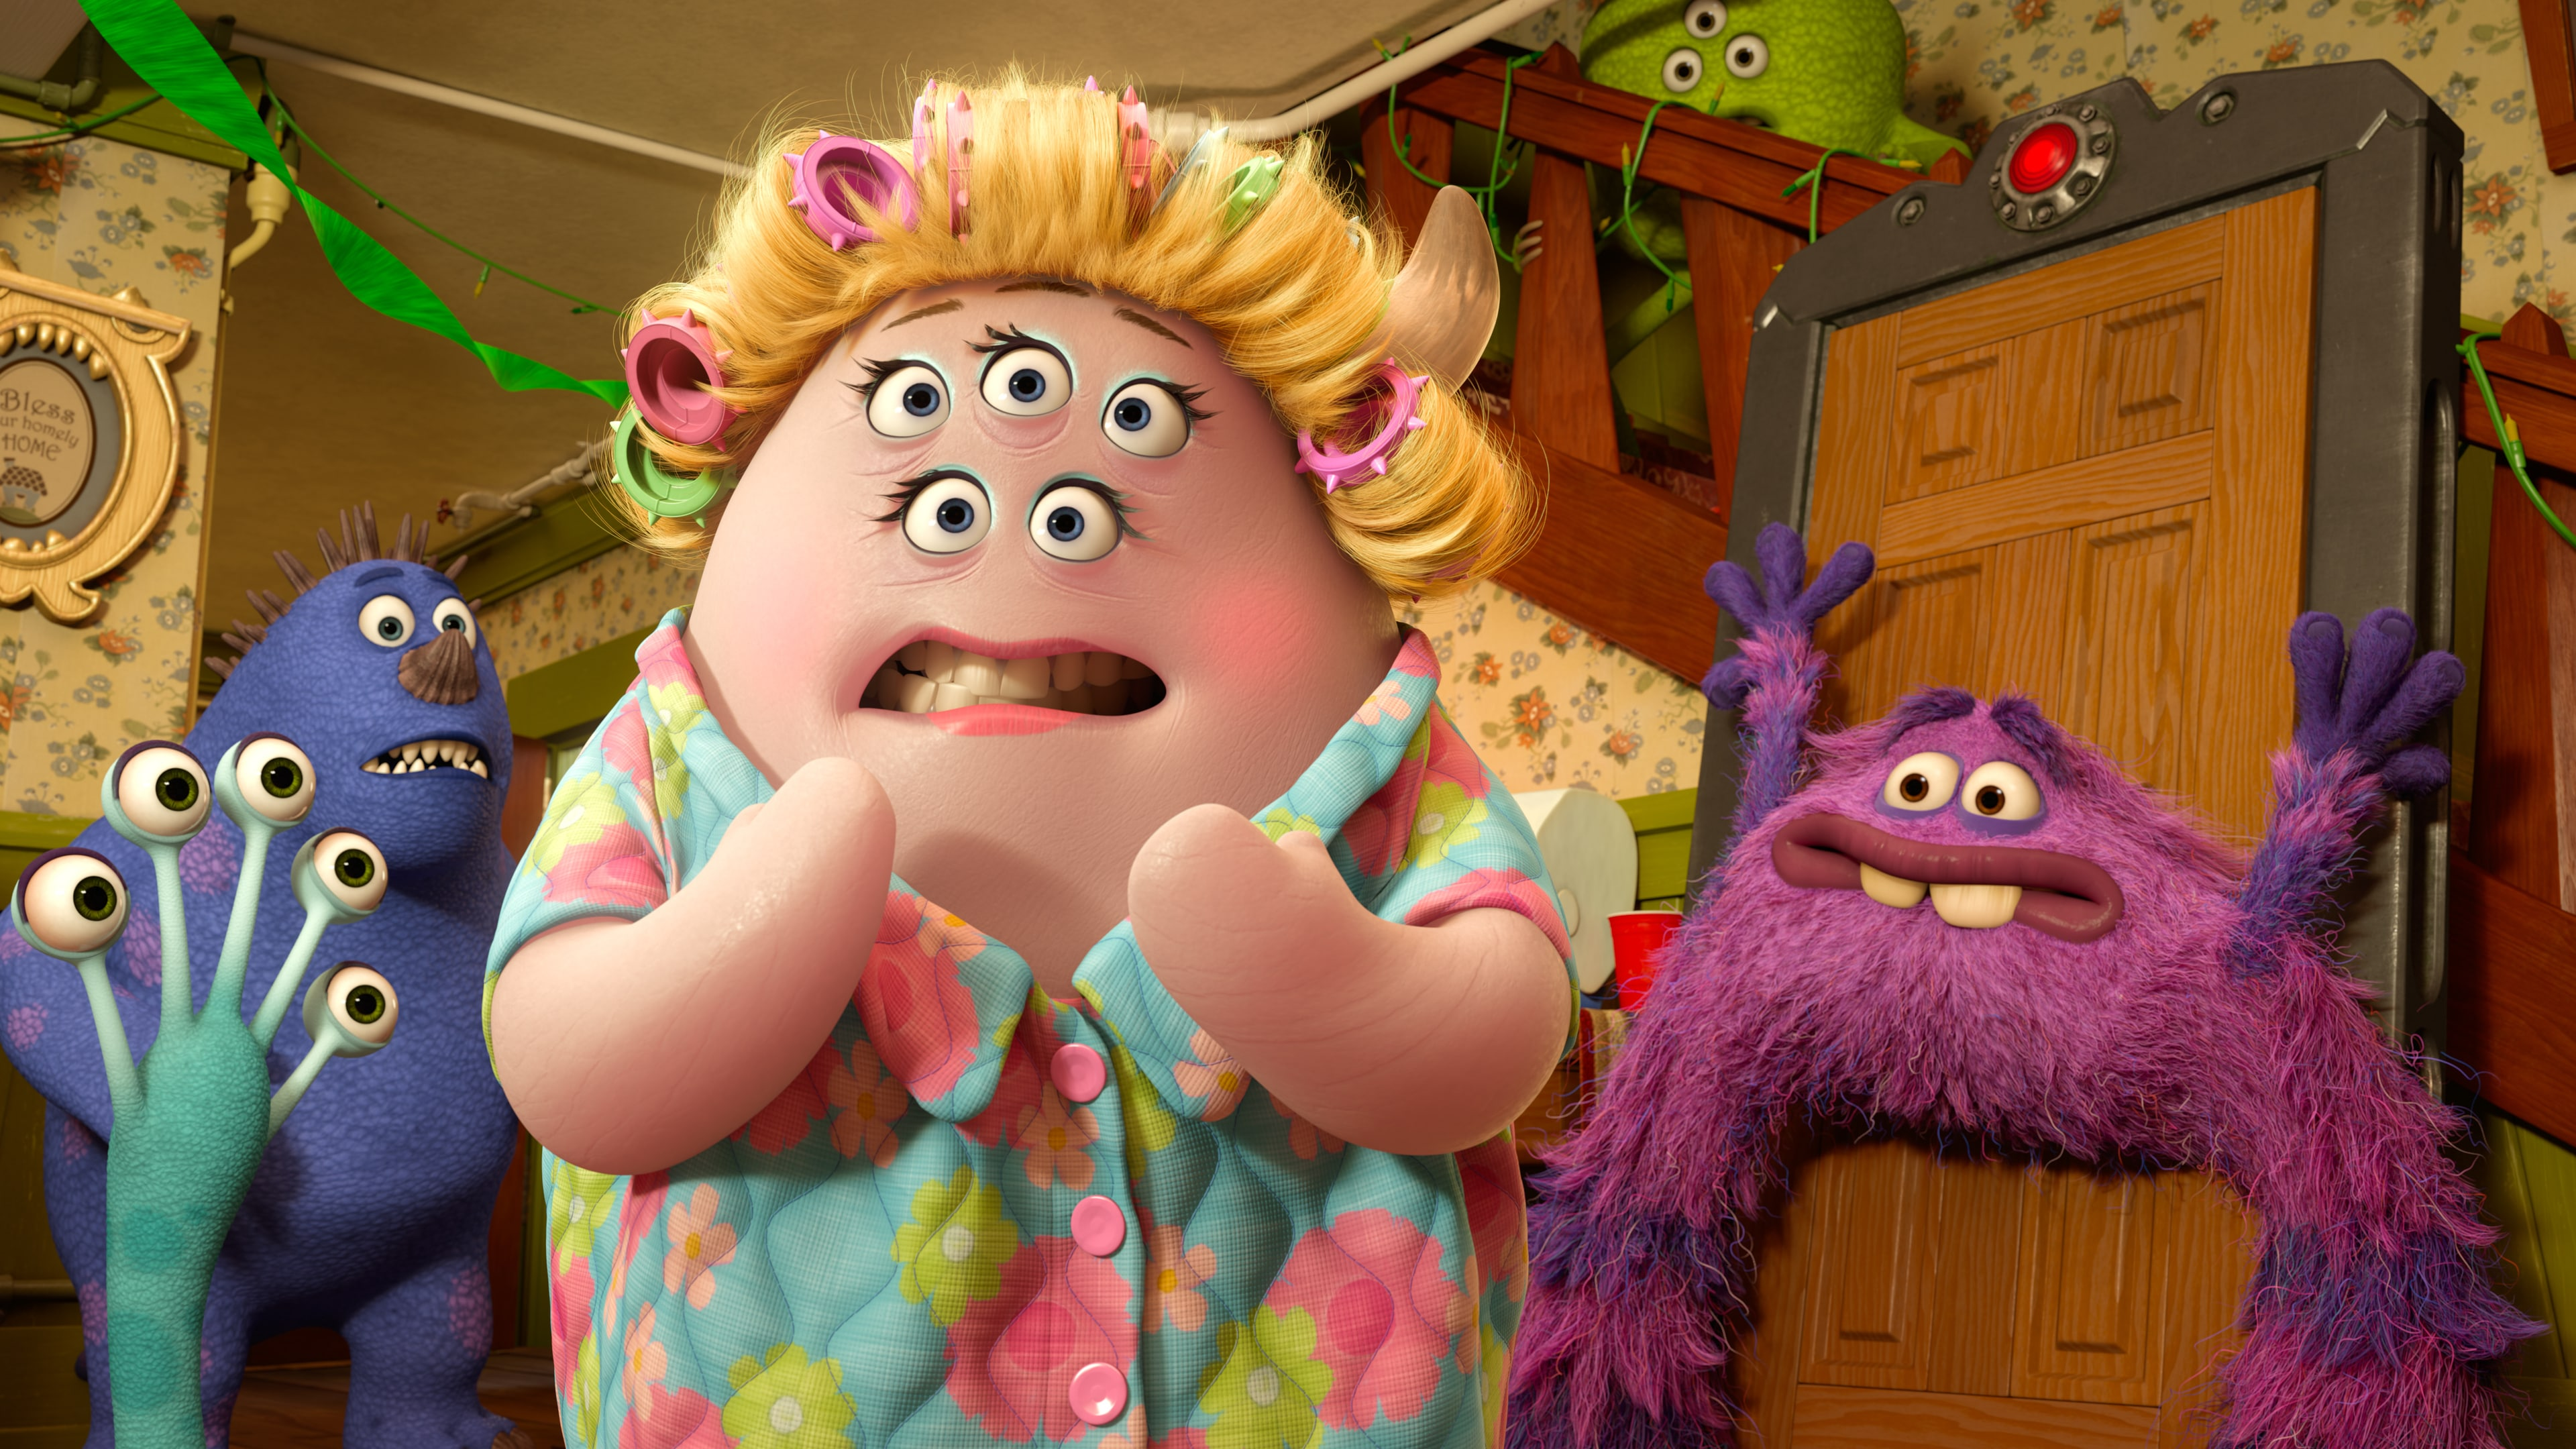 Ms. Squibbles (voiced by Julia Sweeney) and Art (voiced by Charlie Day) in the Disney•Pixar movie Party Central.